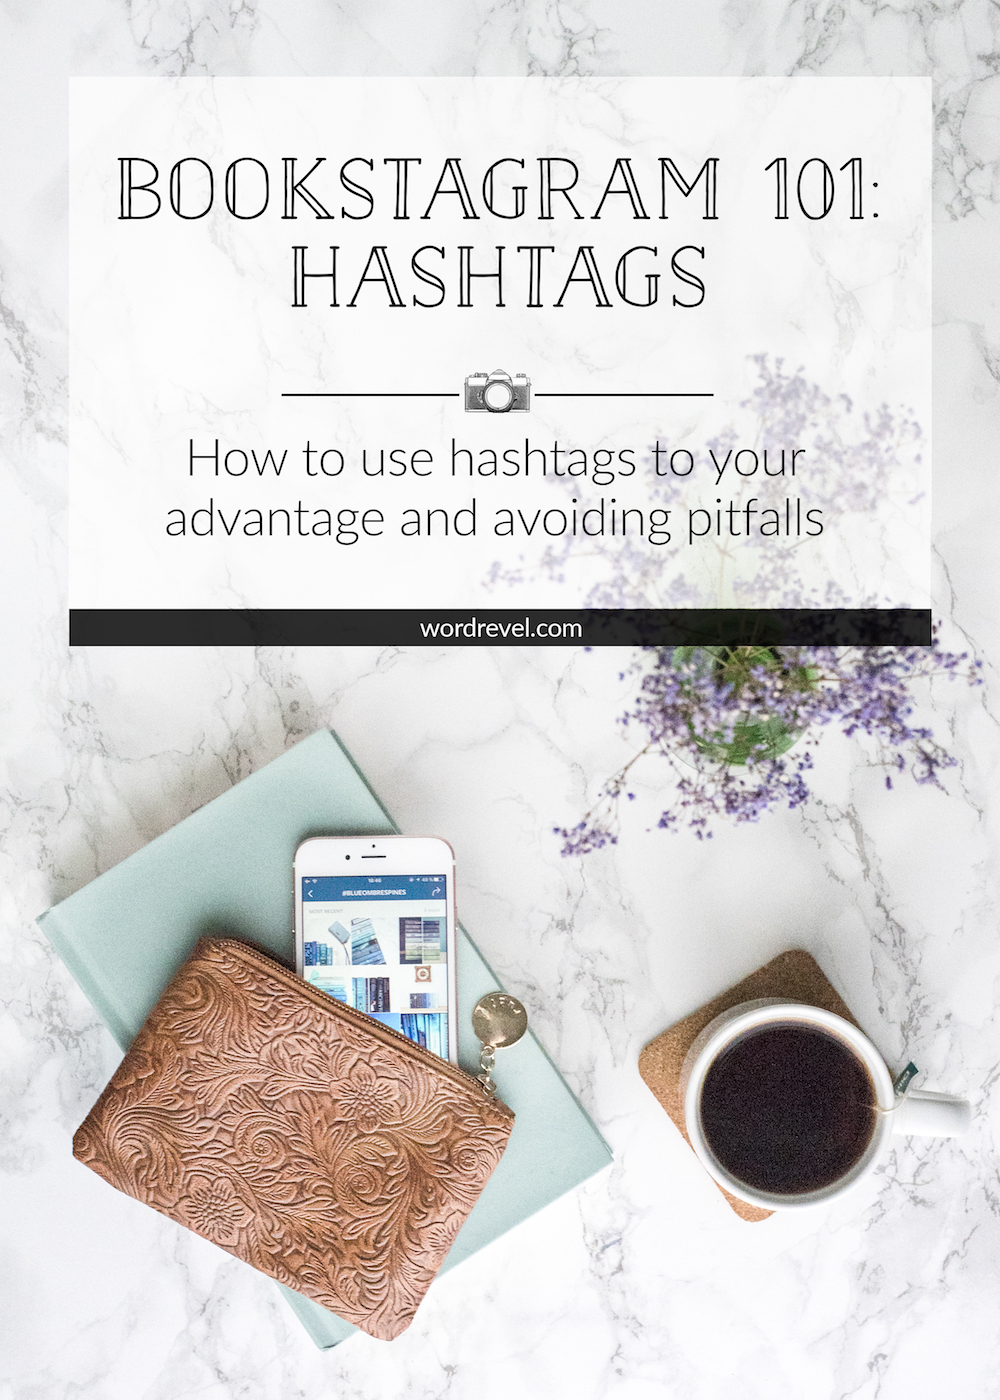 Bookstagram 101 - Hashtags